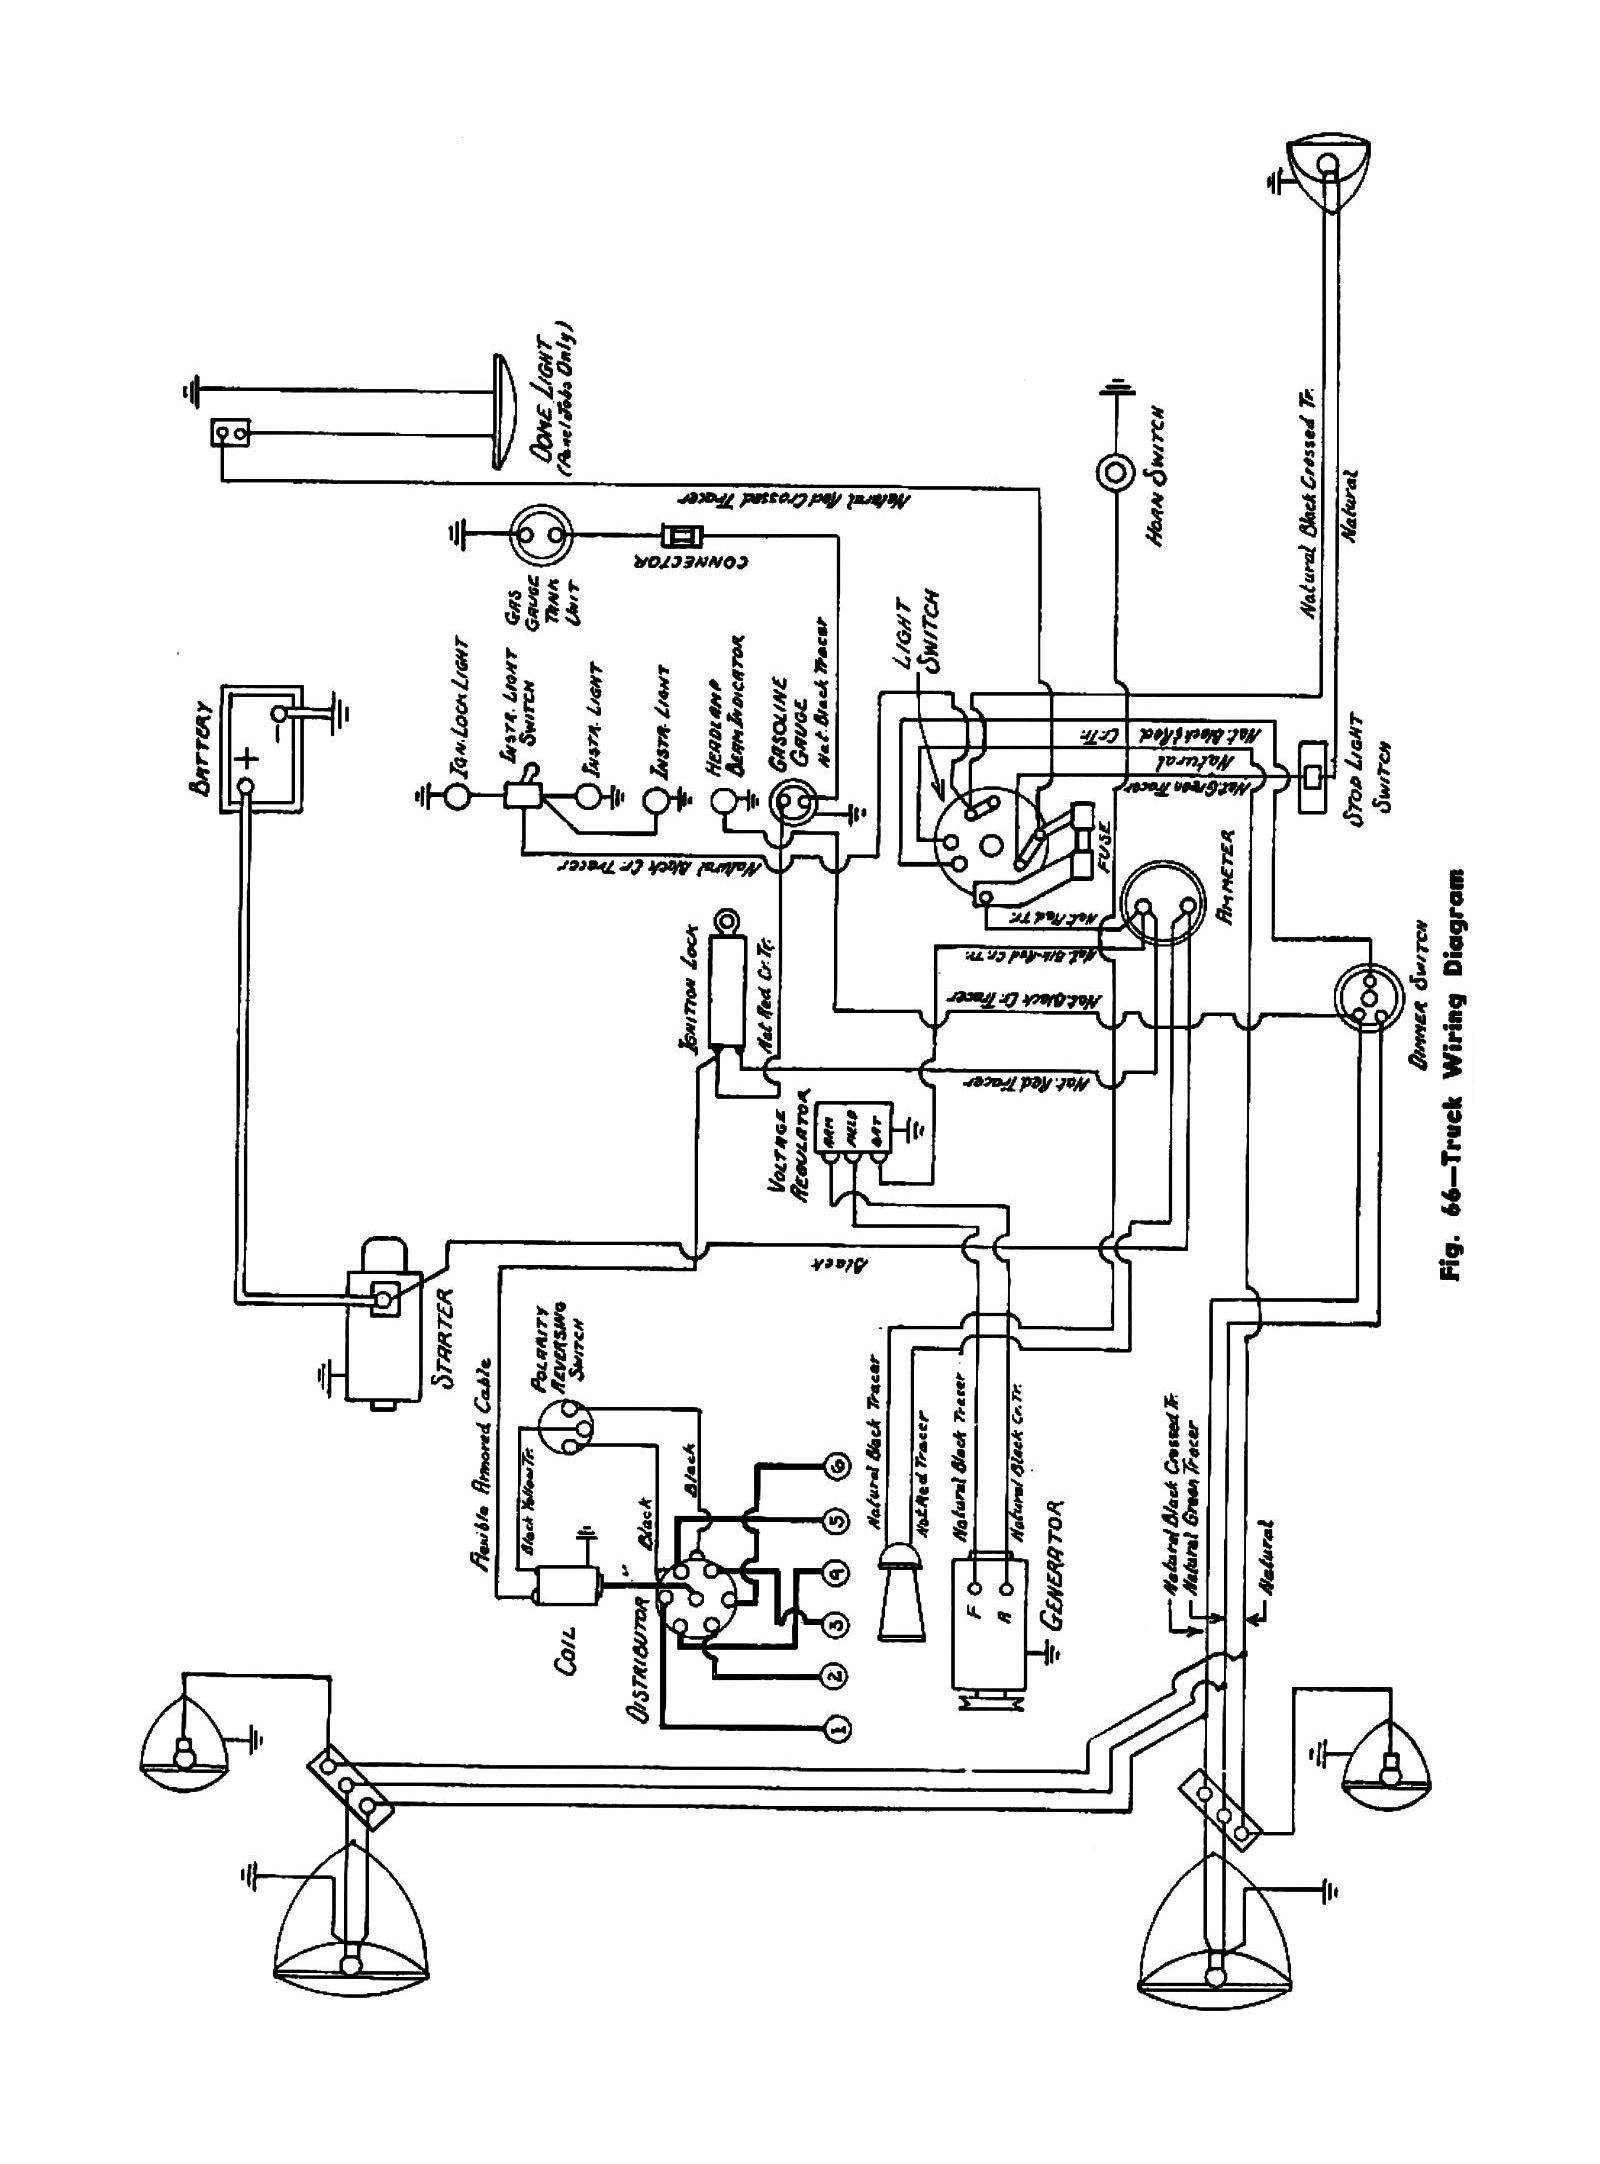 1960 ford pickup wiring diagram free picture wiring diagram query 1978 Ford Truck Wiring Diagram wiring diagrams for cars and truck wiring diagram data 1960 ford pickup wiring diagram free picture